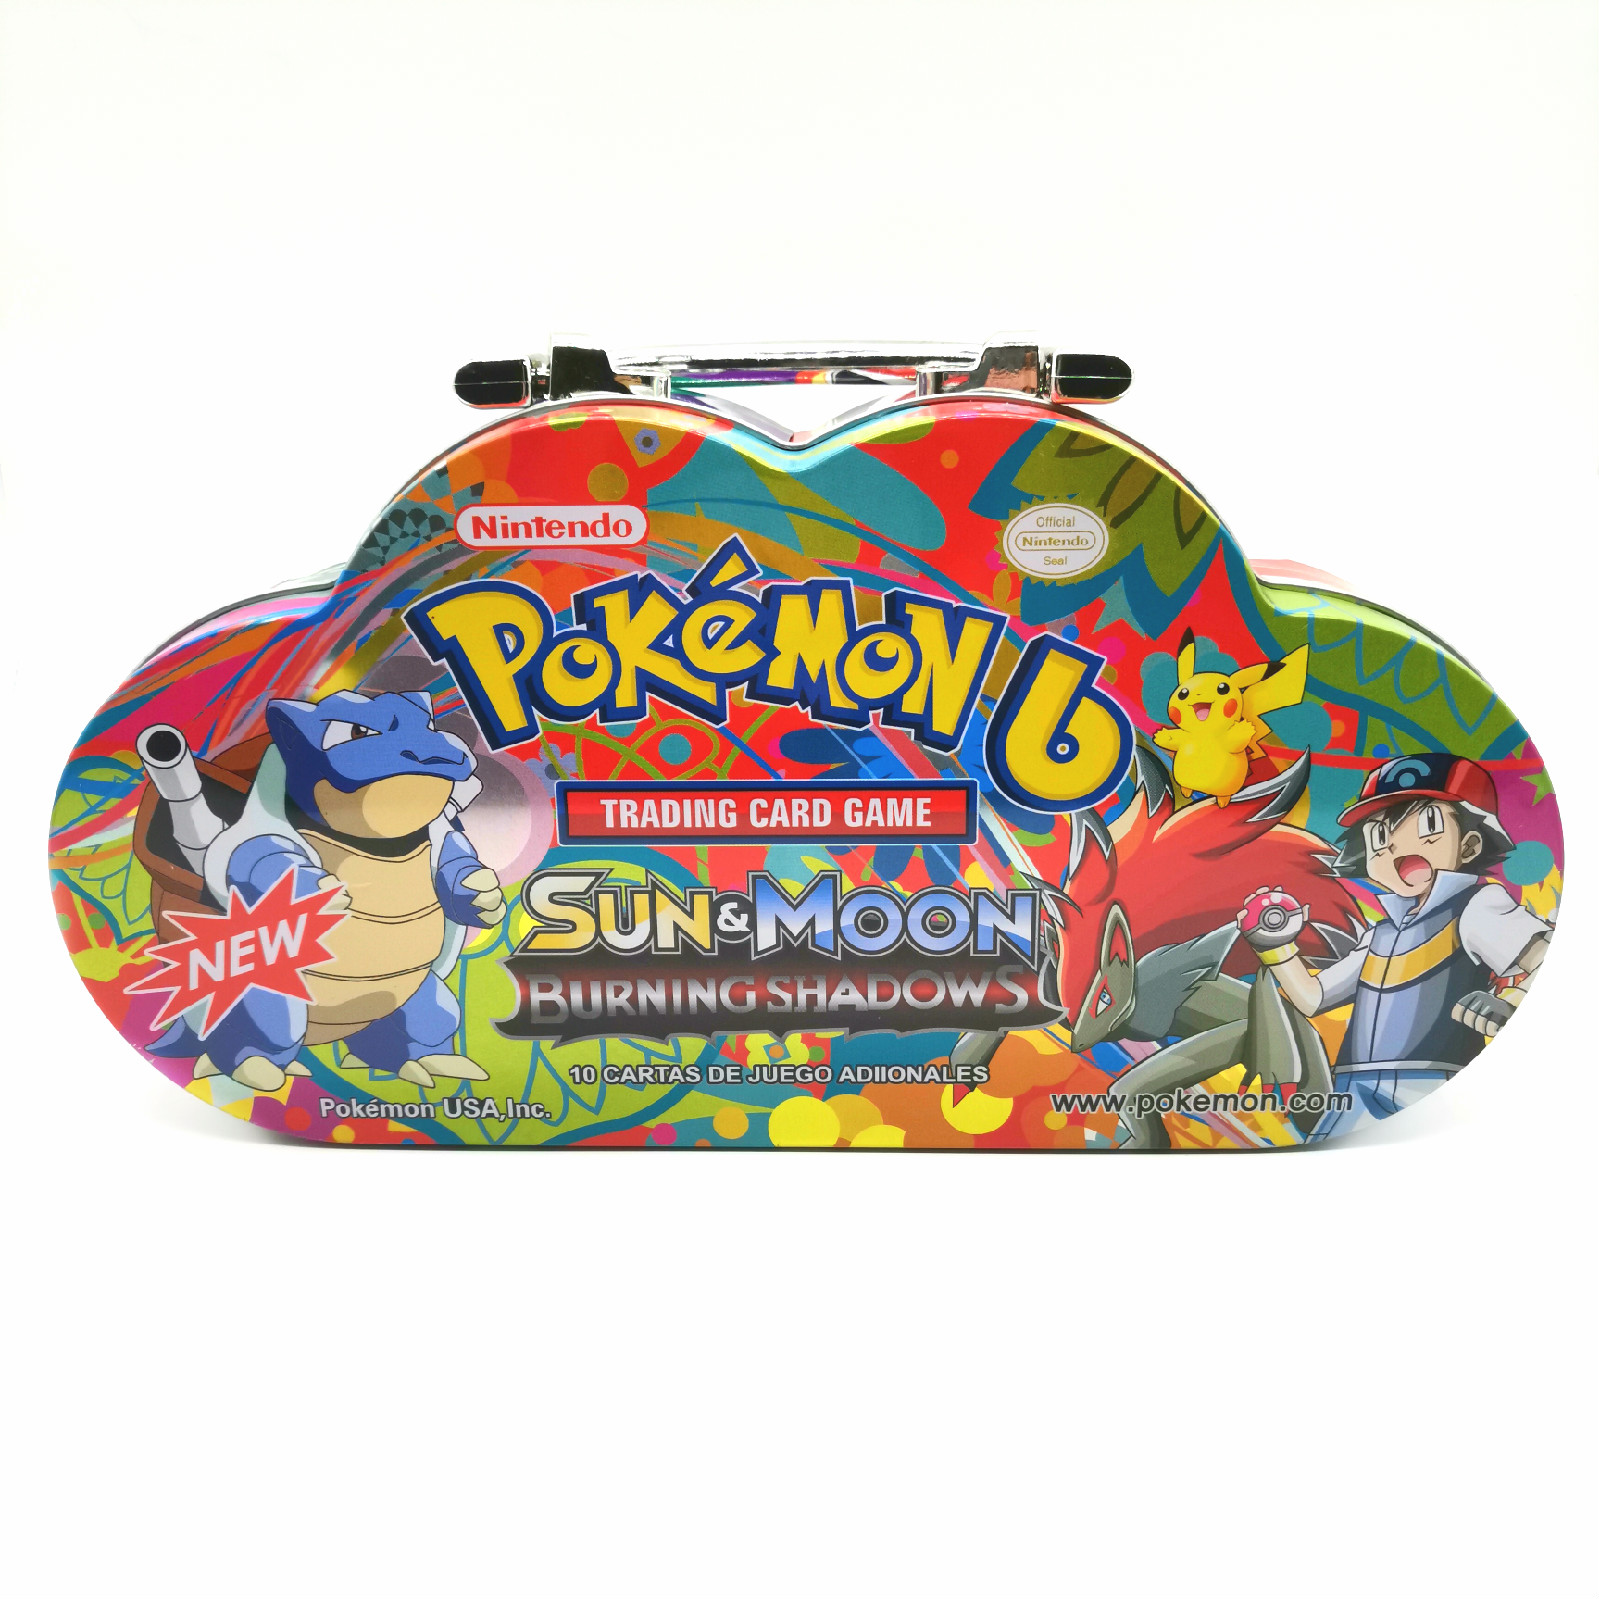 80pcs-set-font-b-pokemon-b-font-portable-tin-box-takara-tomy-battle-toys-hobbies-hobby-collectibles-game-collection-anime-cards-for-children